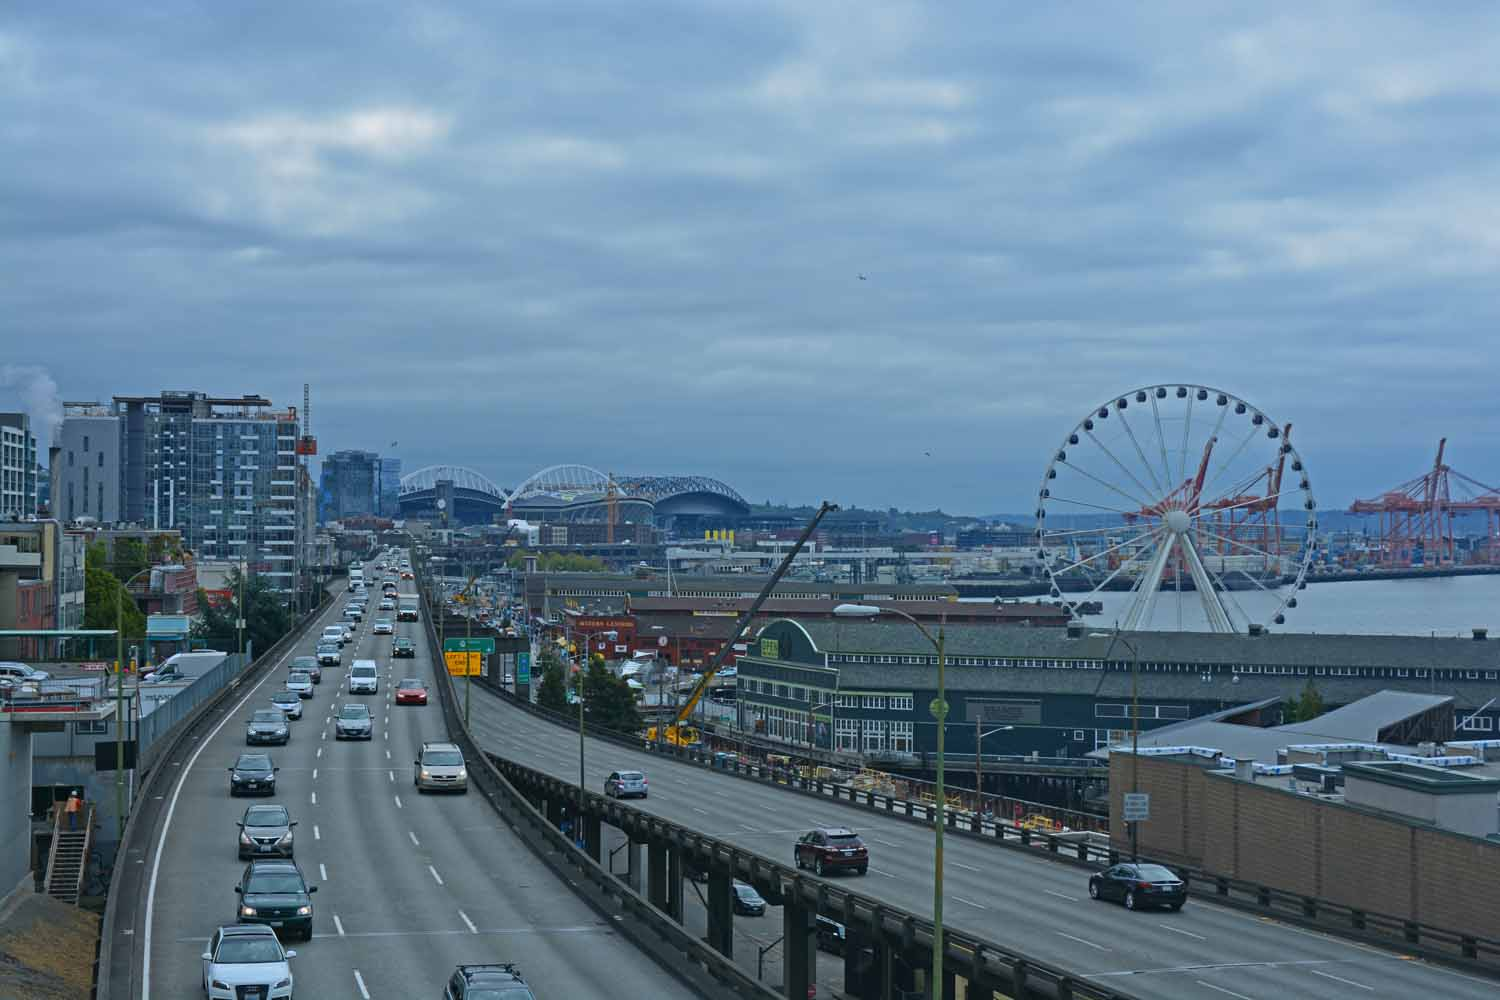 This could be an iconic shot of Seattle...the harbor and lots of traffic...